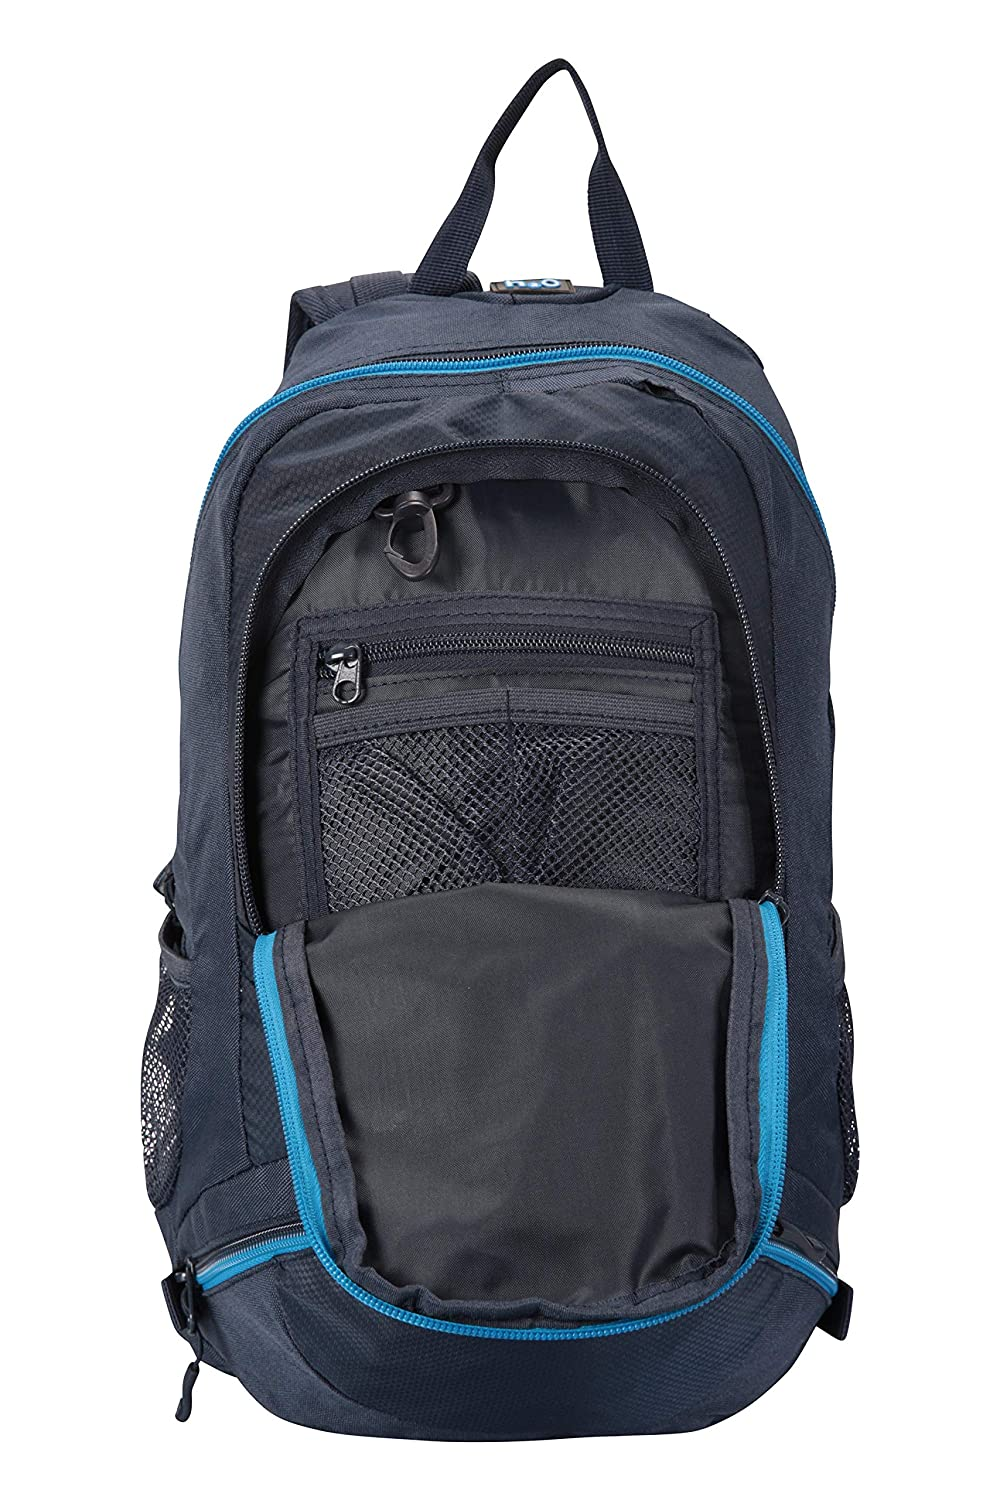 01601d4fdc Mountain Warehouse Endeavour 12L Backpack - Durable Summer Rucksack Navy